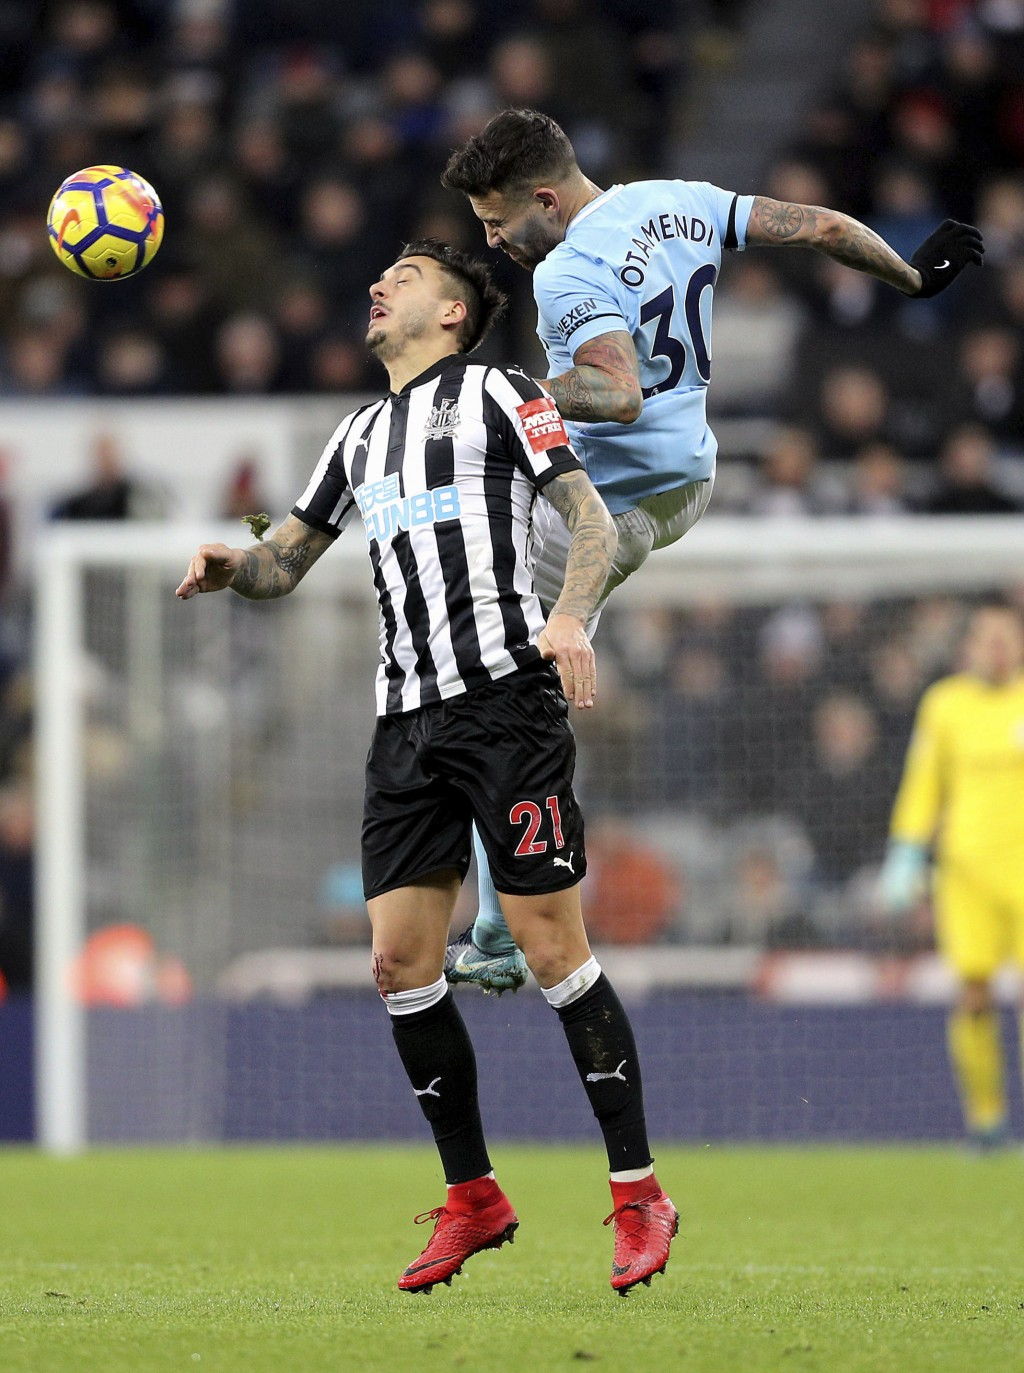 Newcastle United's Joselu, left, and Manchester City's Nicolas Otamendi battle for the ball during their English Premier League soccer match at St Jam...